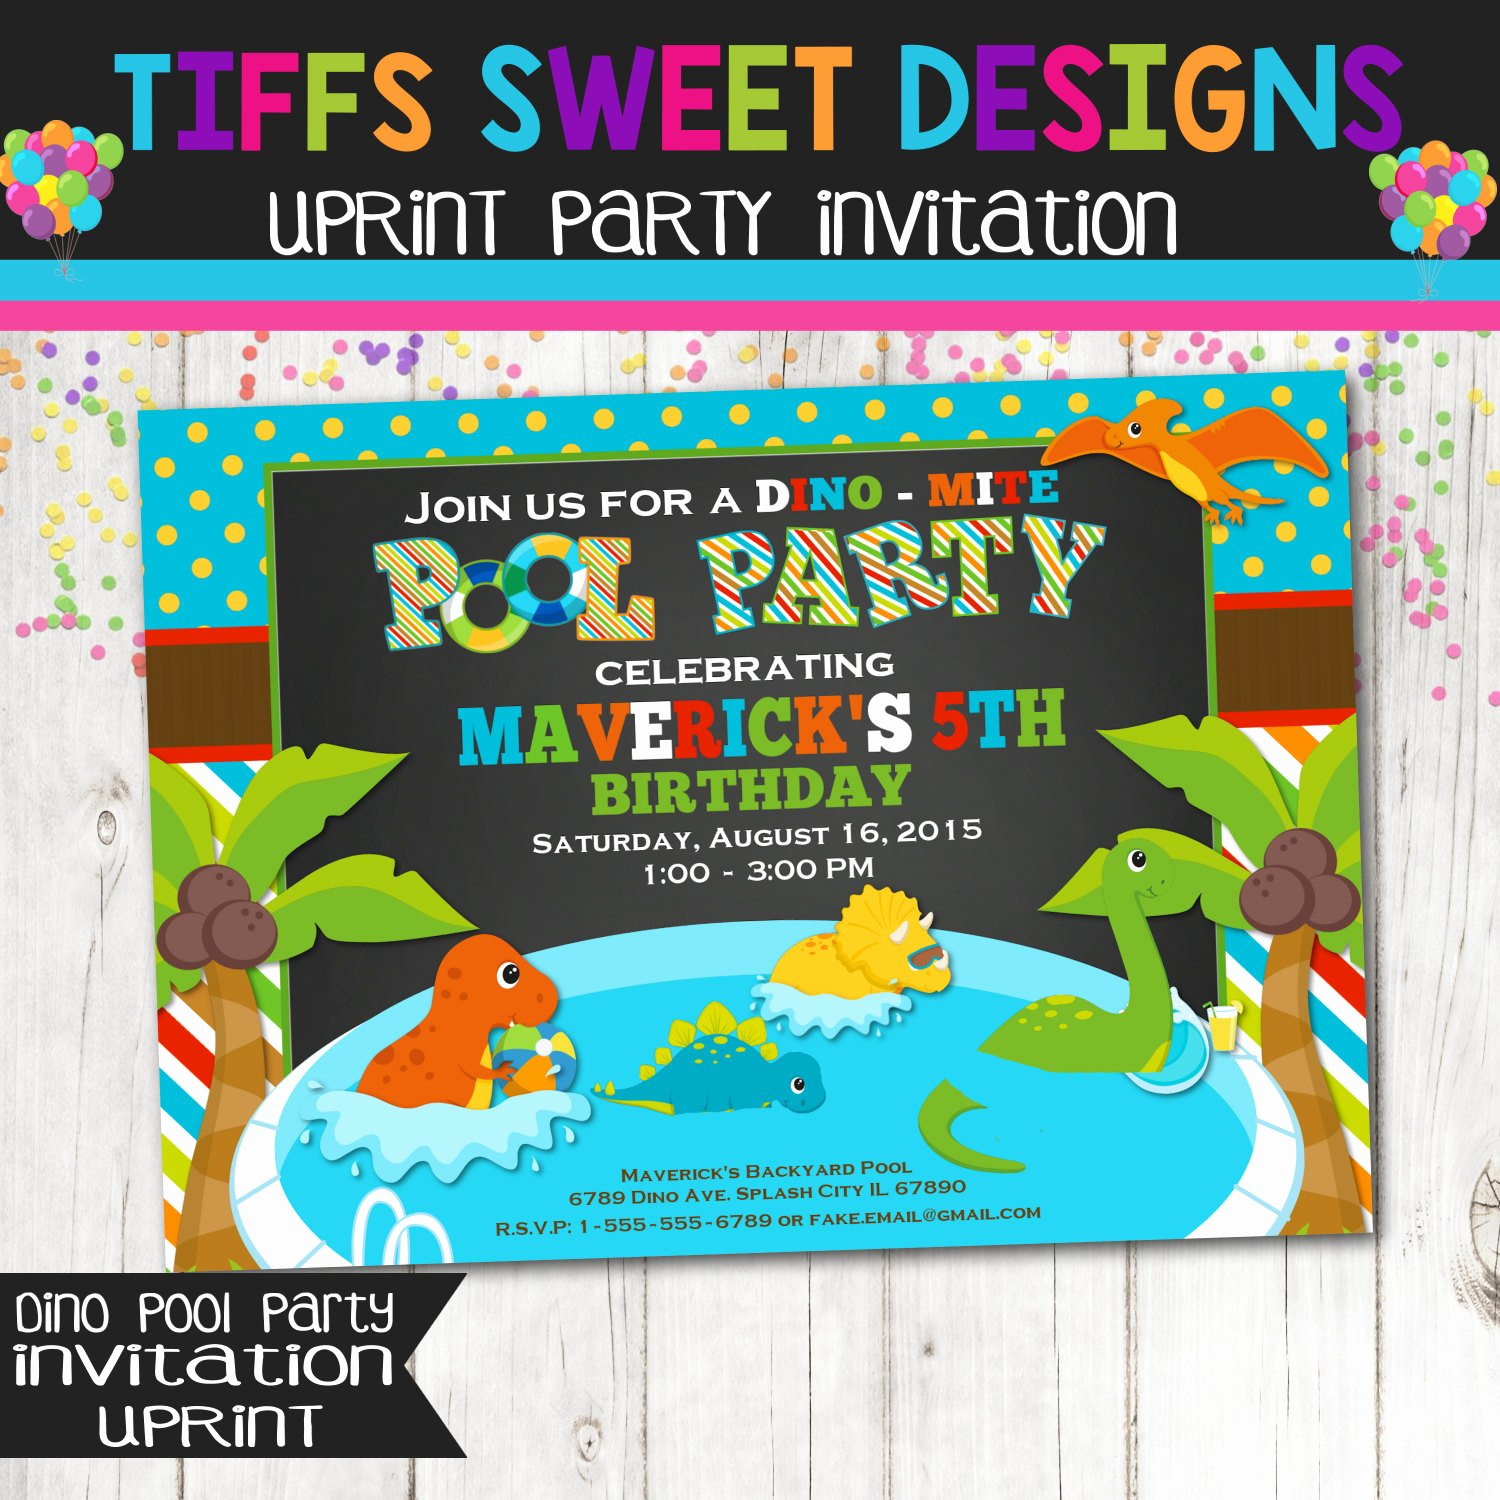 Dinosaur Birthday Party Invitations Awesome Dinosaur Pool Party Invitation Birthday Party Dino